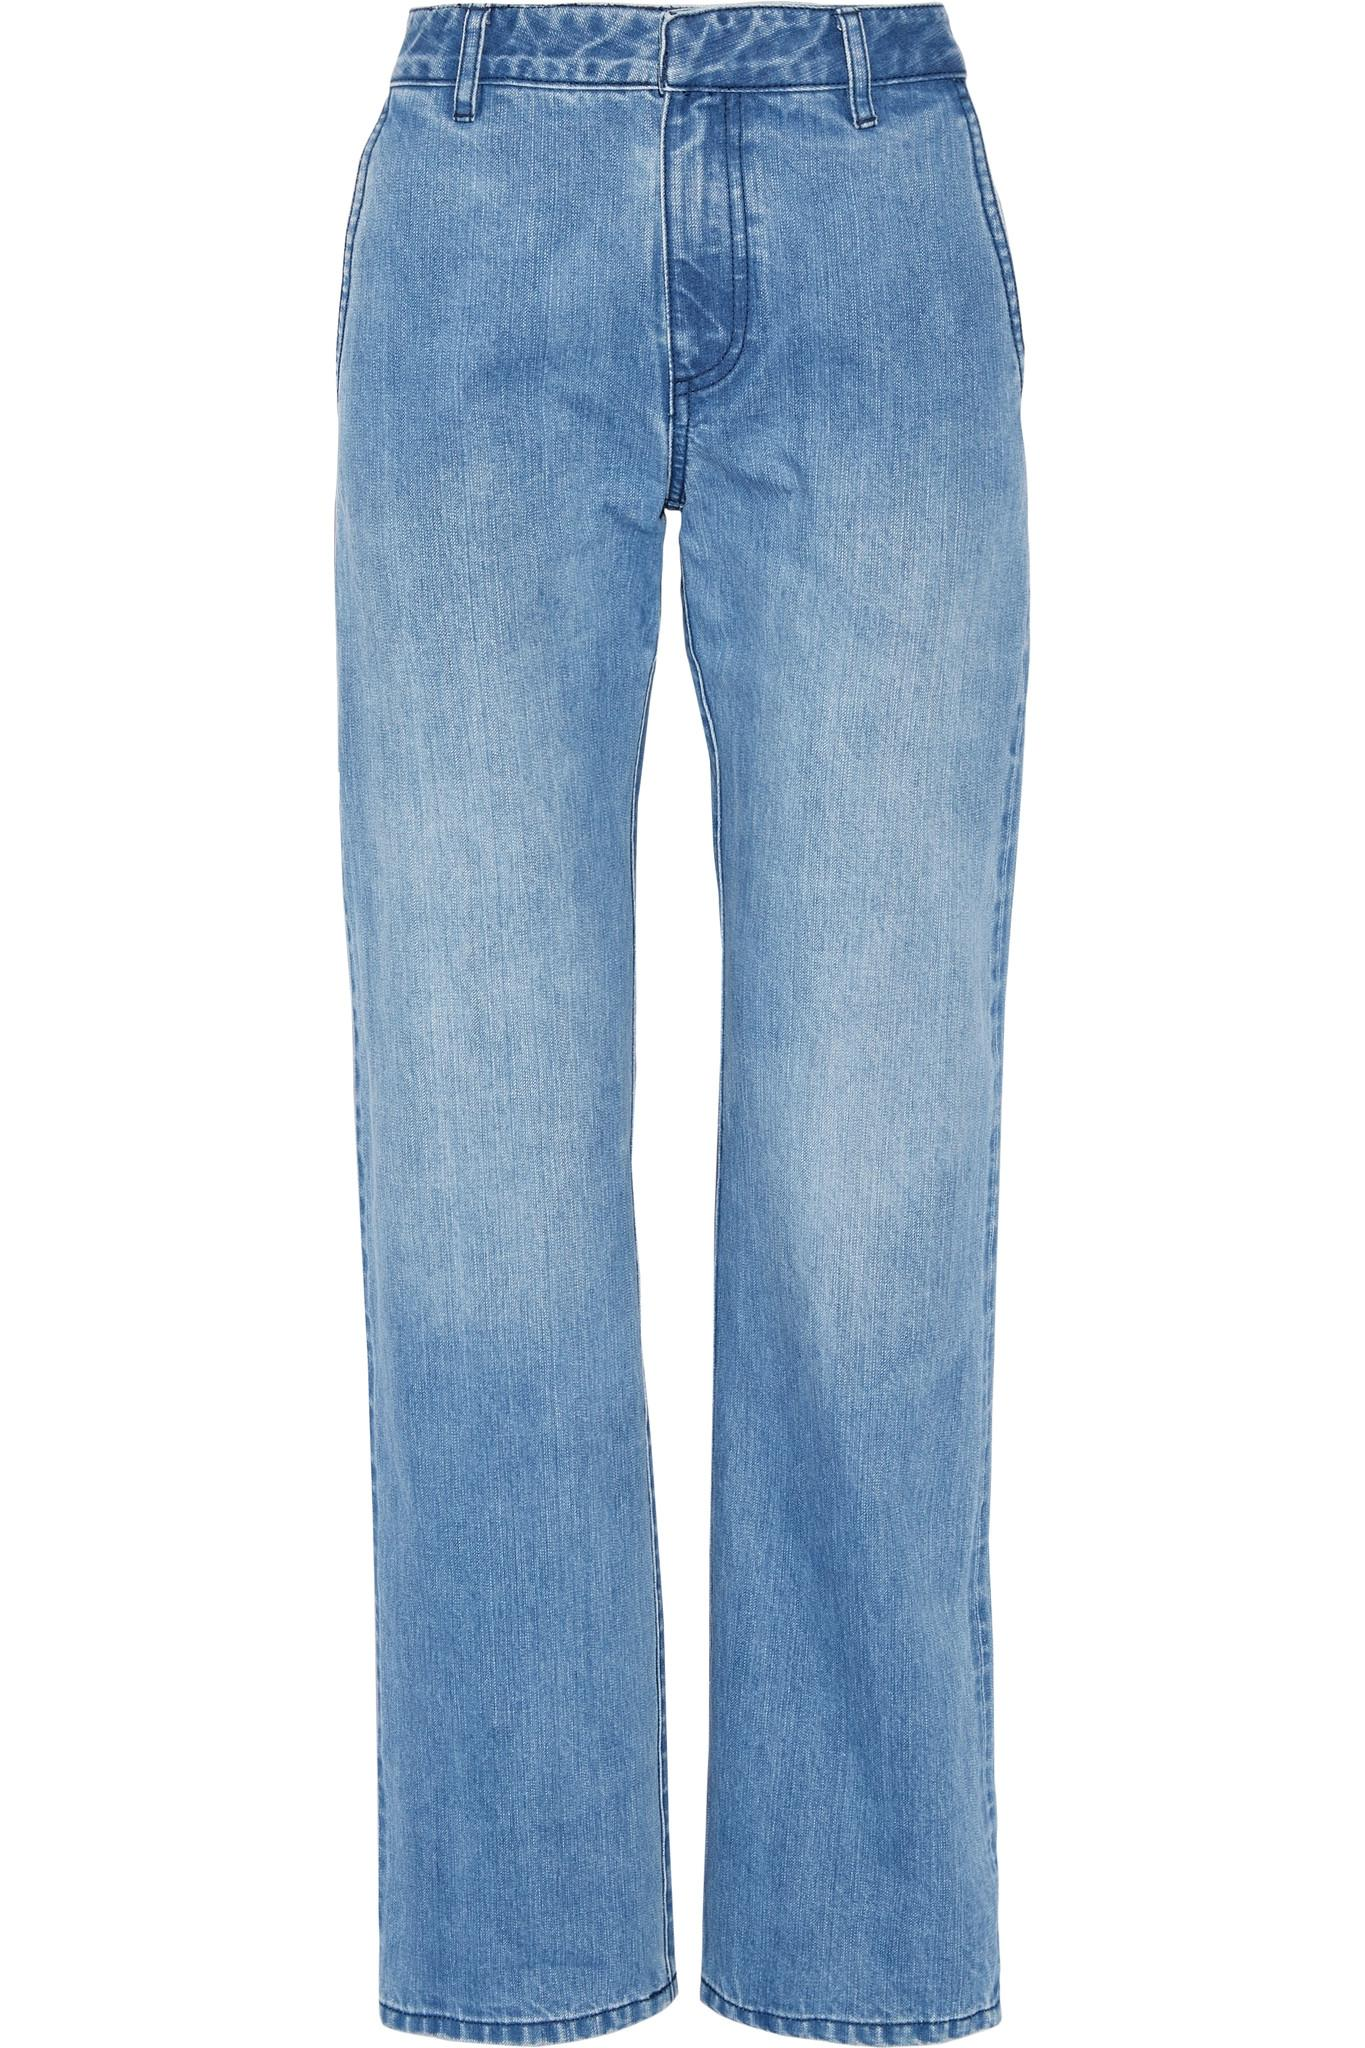 Tibi Denim Boyfriend Jeans in Light Denim (Blue)